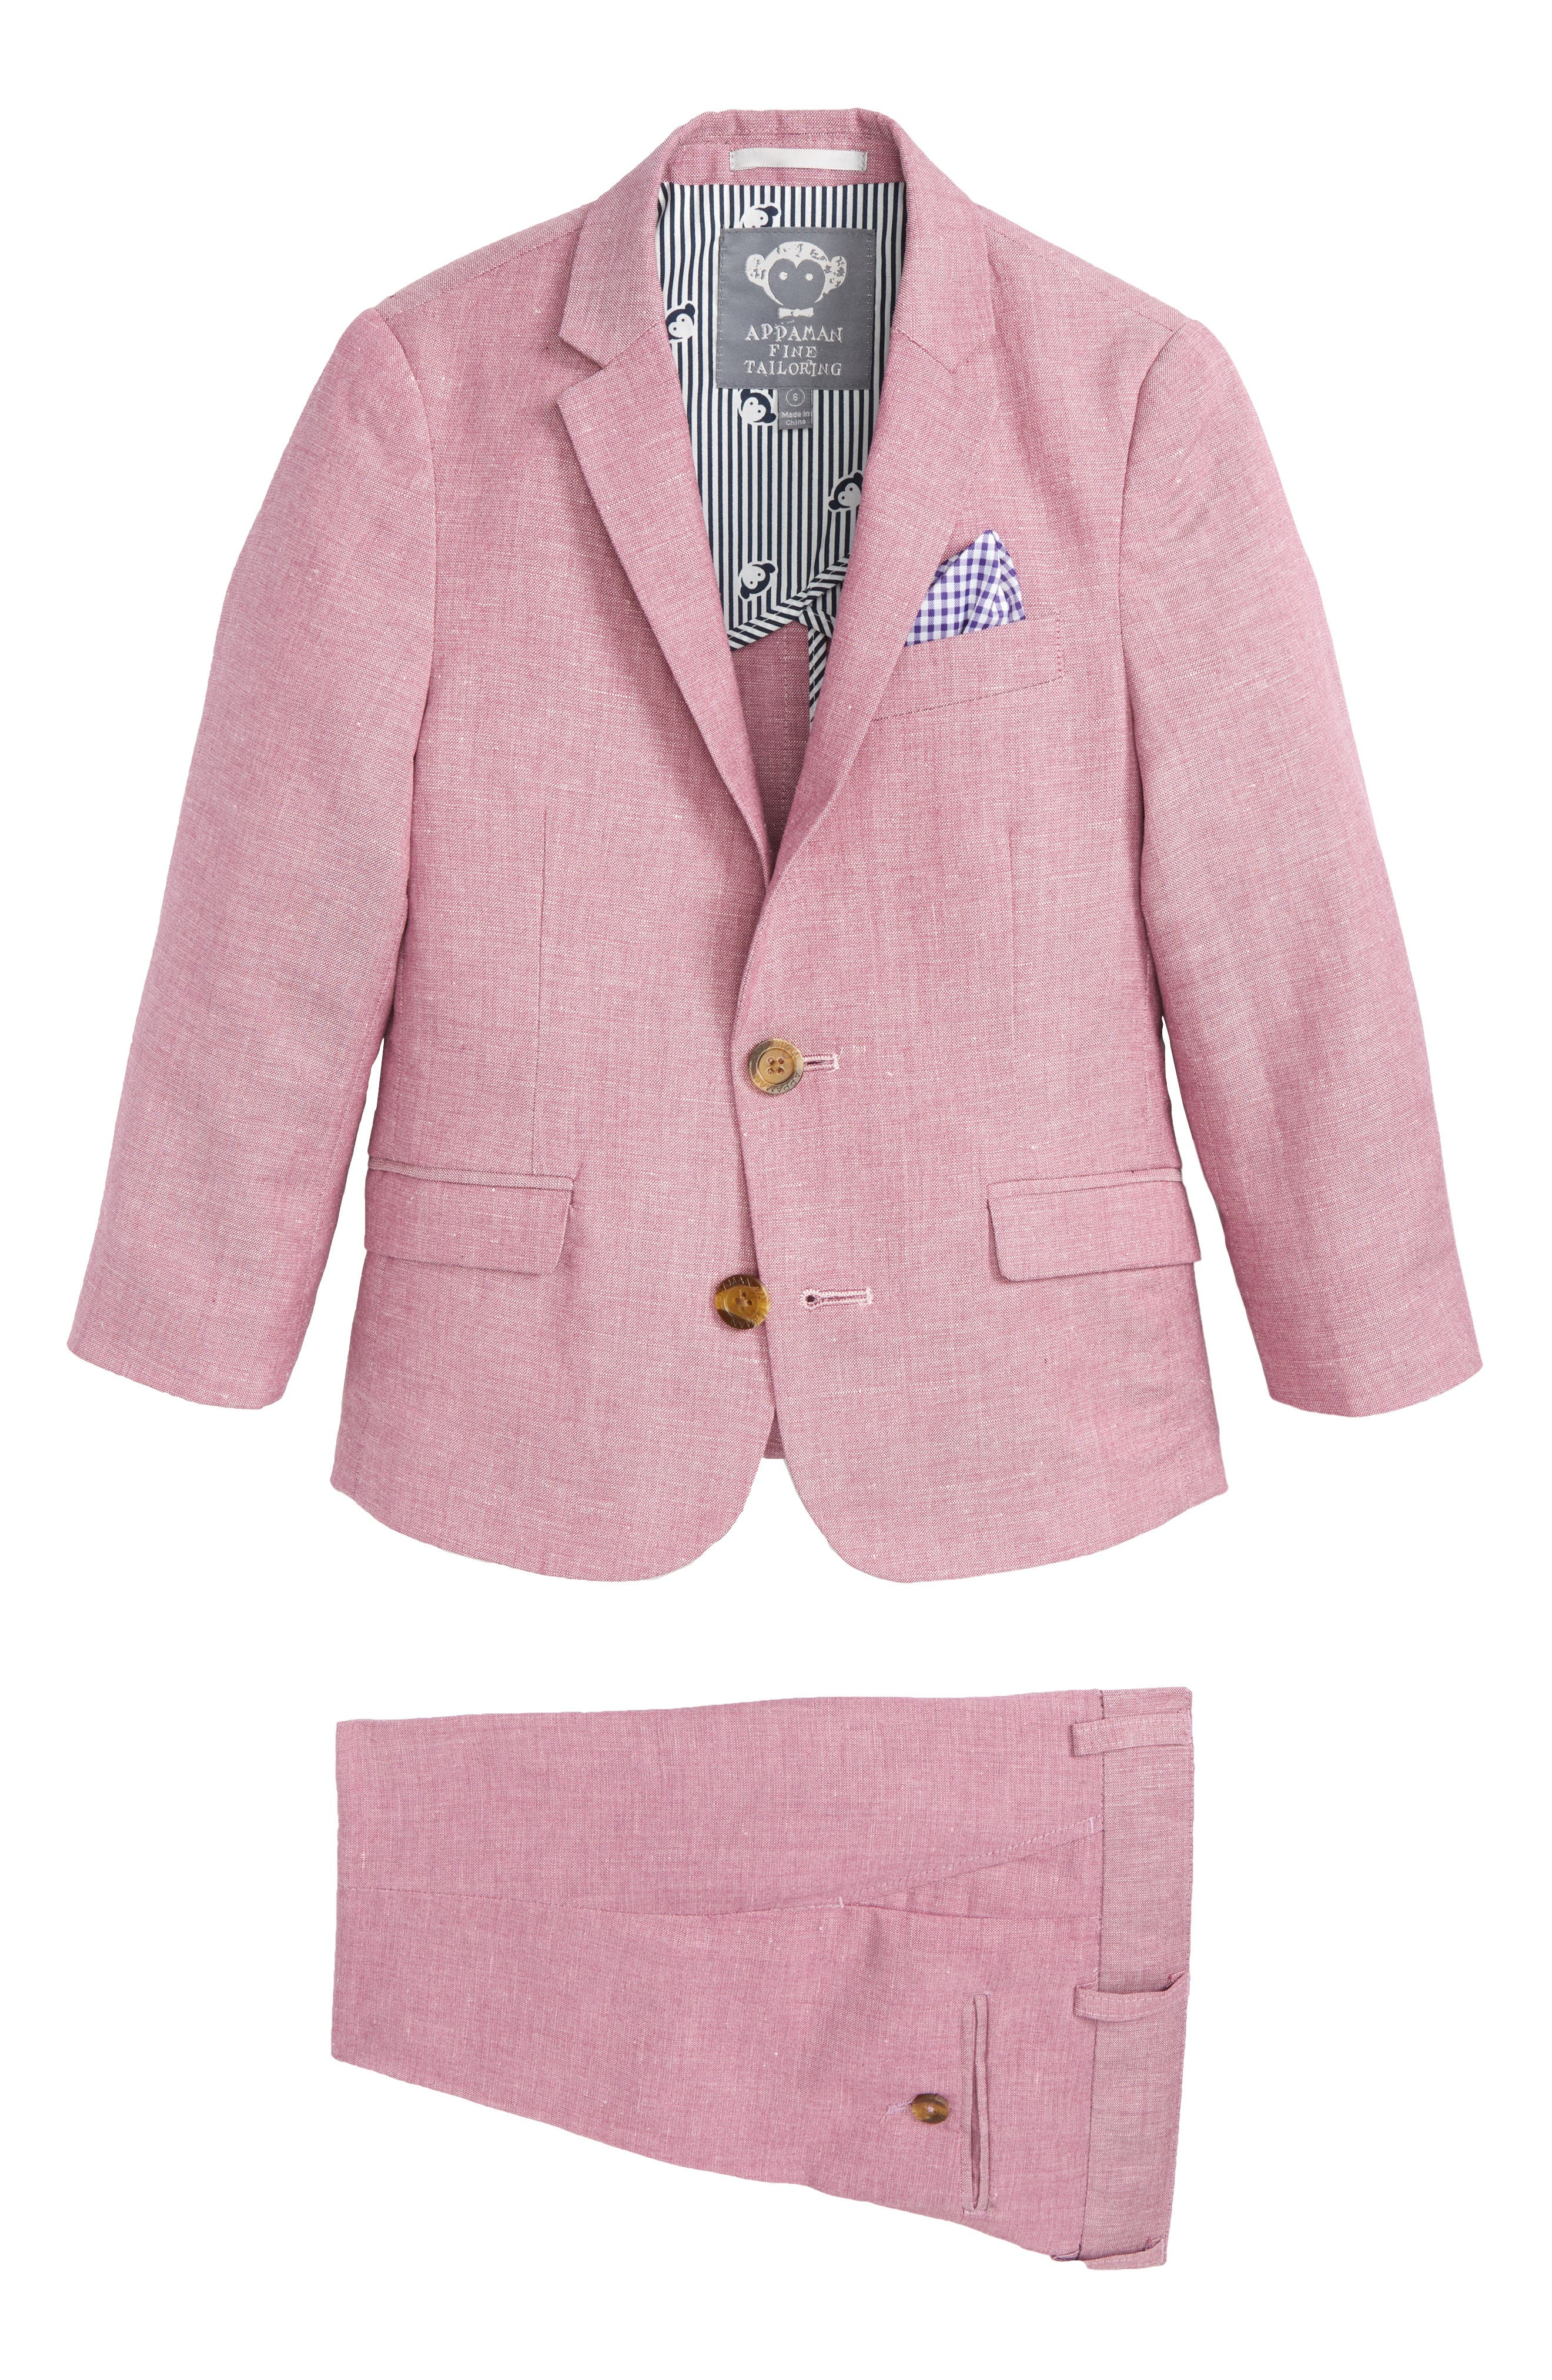 Appaman Two-Piece Modern Fashion Suit (Toddler Boys, Little Boys & Big Boys)